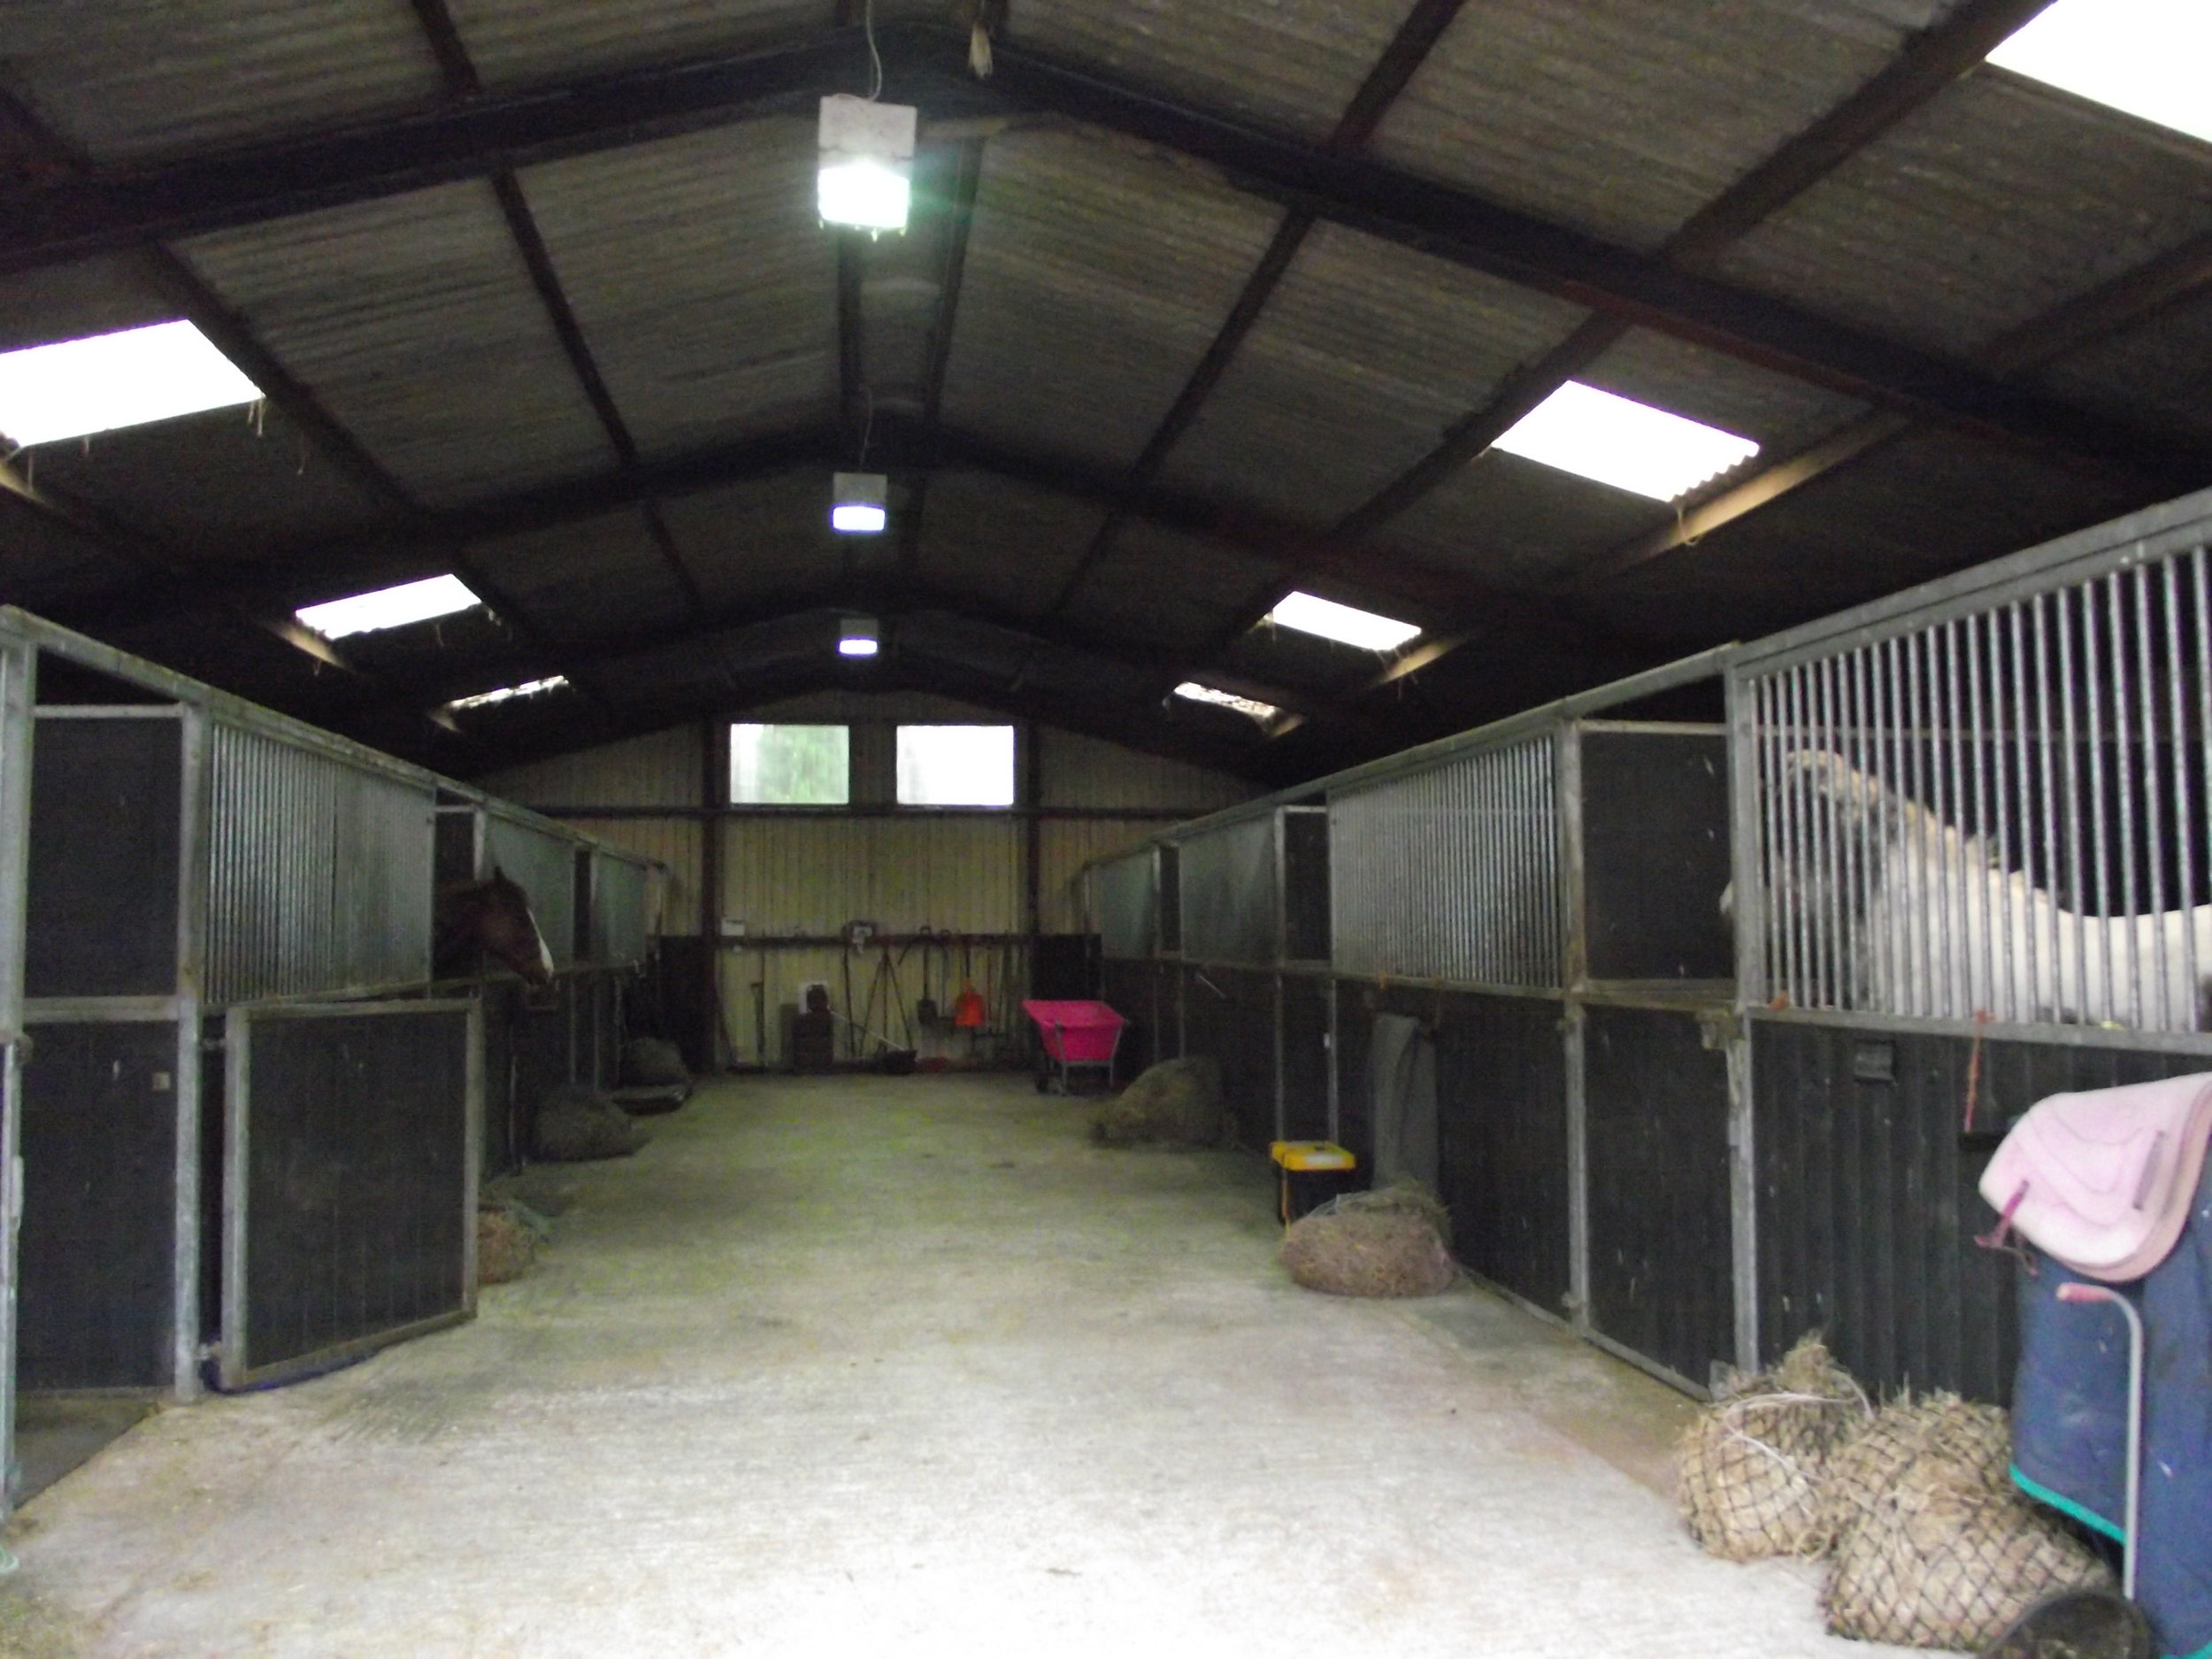 Holiday and Emergency Livery - Huge, airy stables, rubber matting, 24 hour supervision, turnout, CCTV security. Give your horse a holiday while you enjoy your own. New Barn is perfect for horses needing emergency stabling, or recovering from injury.